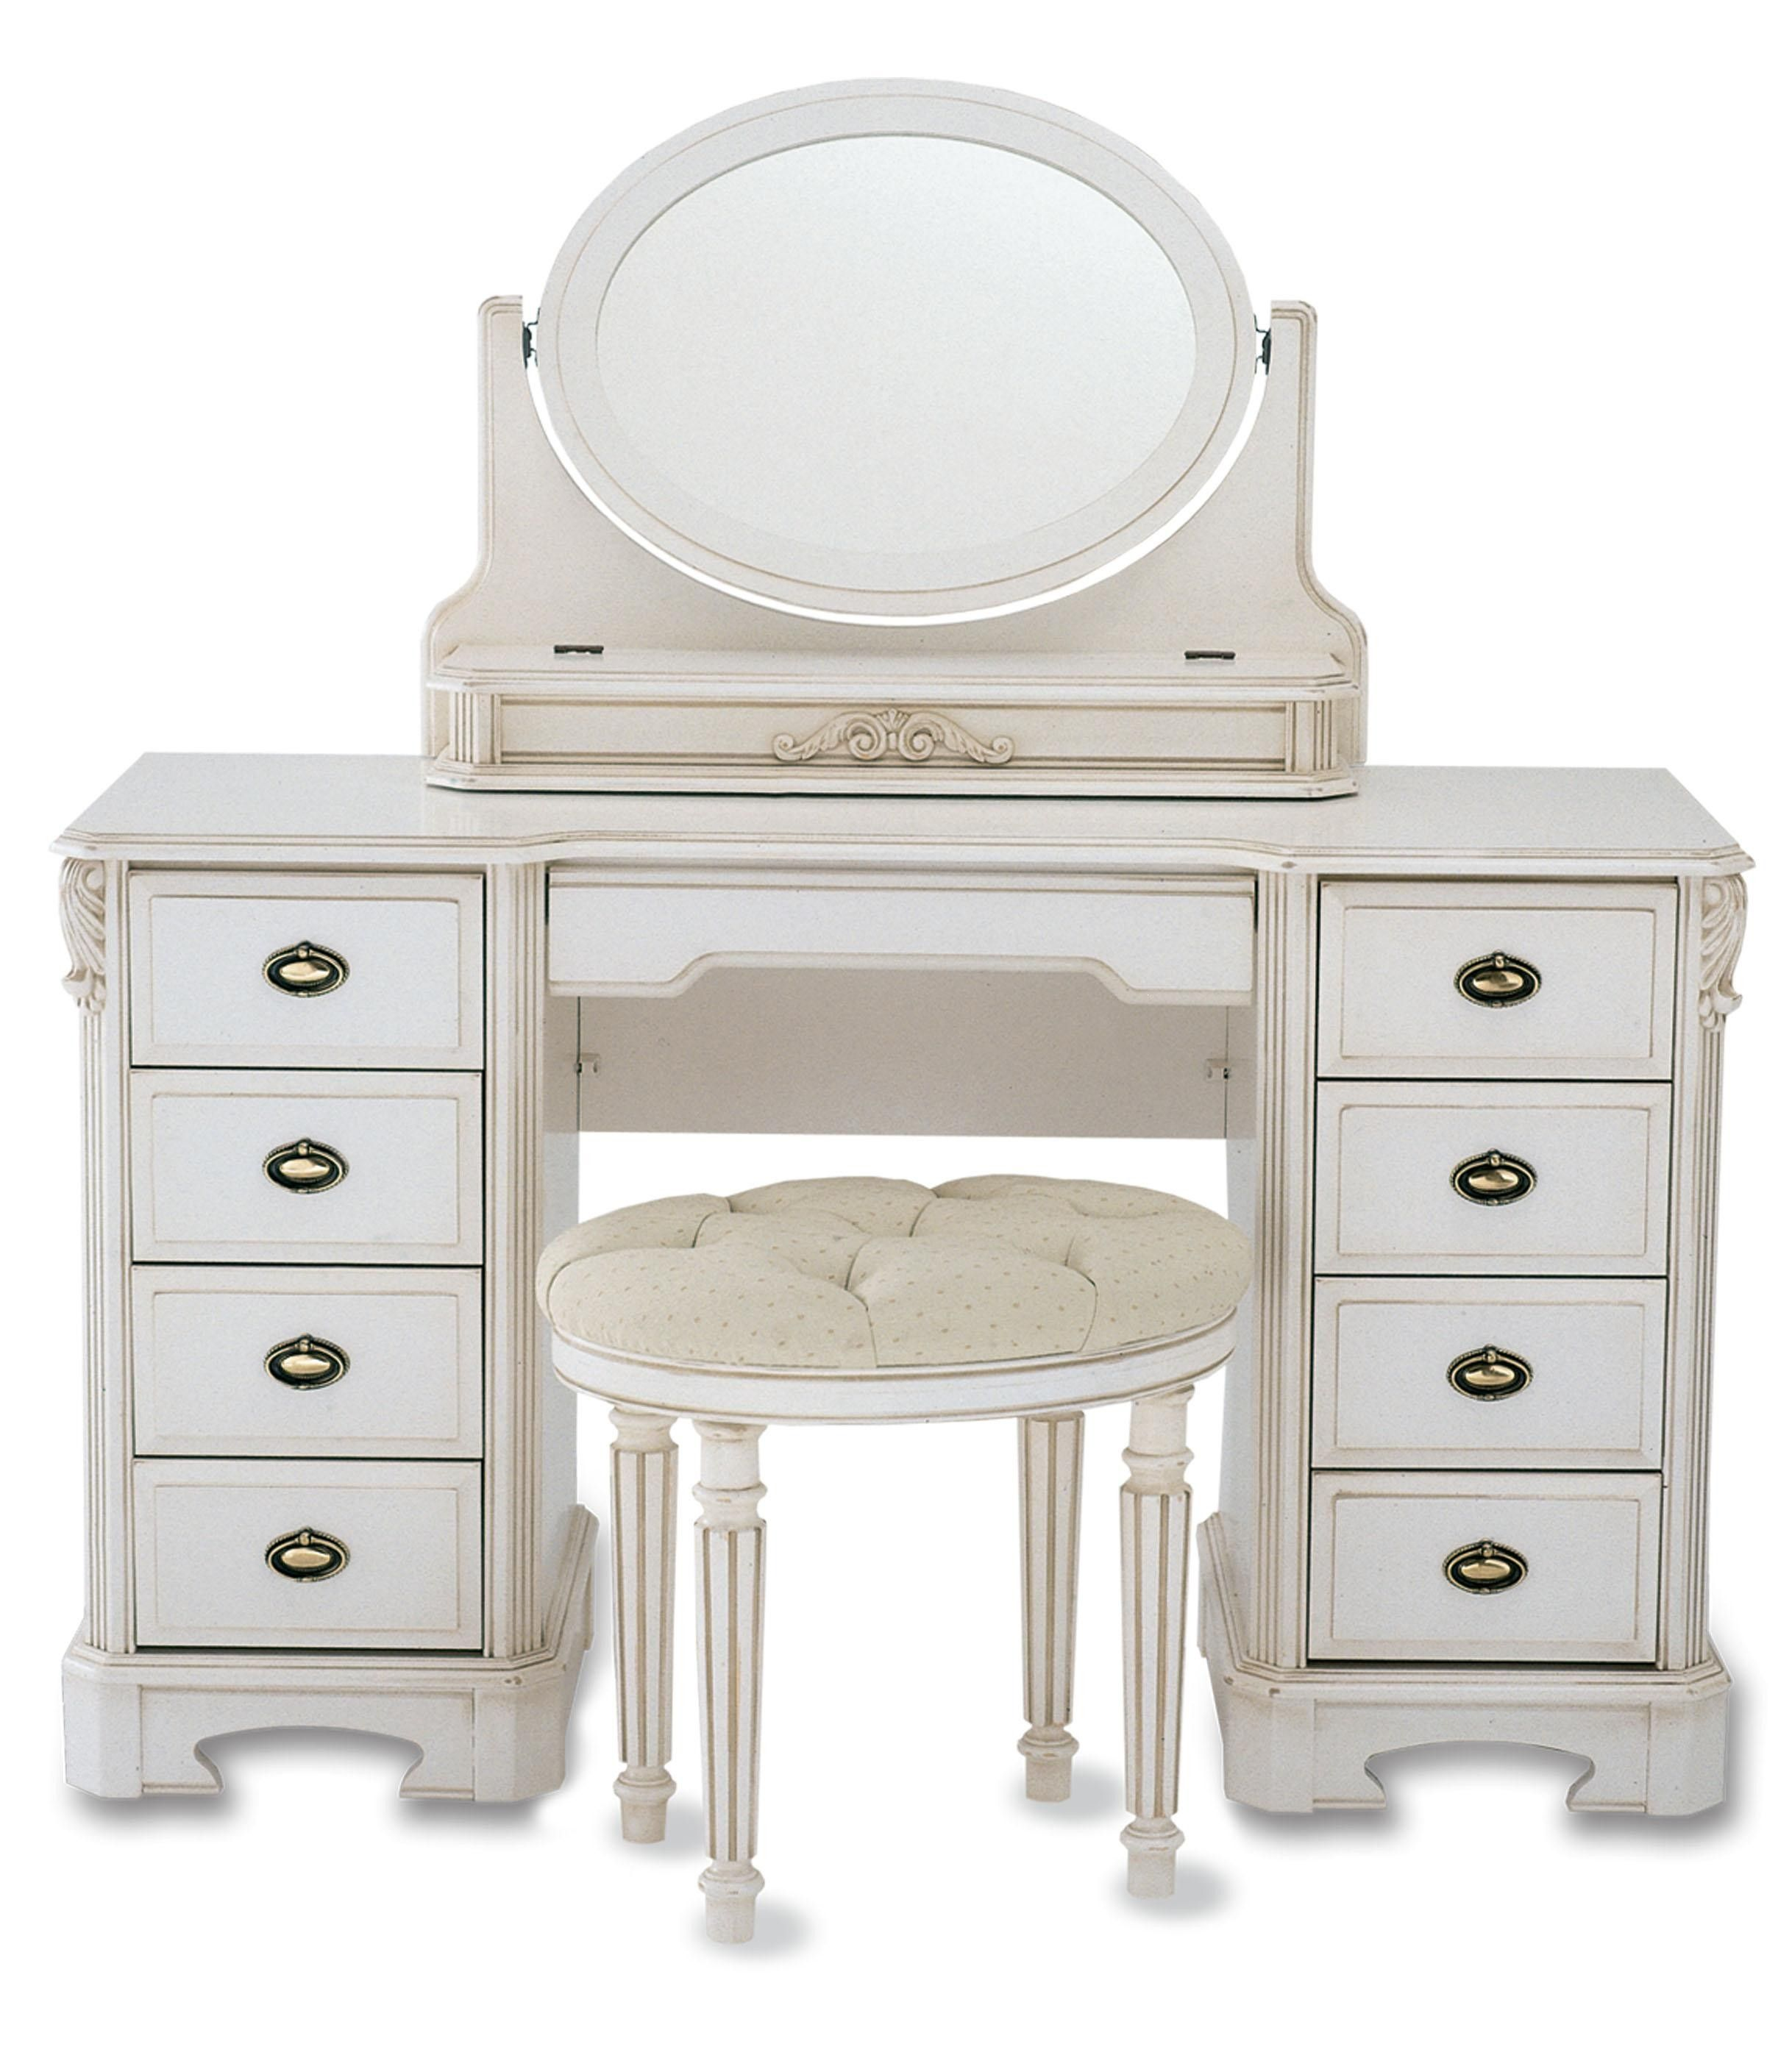 Alluring white dressing table with oval mirror frames be equipped